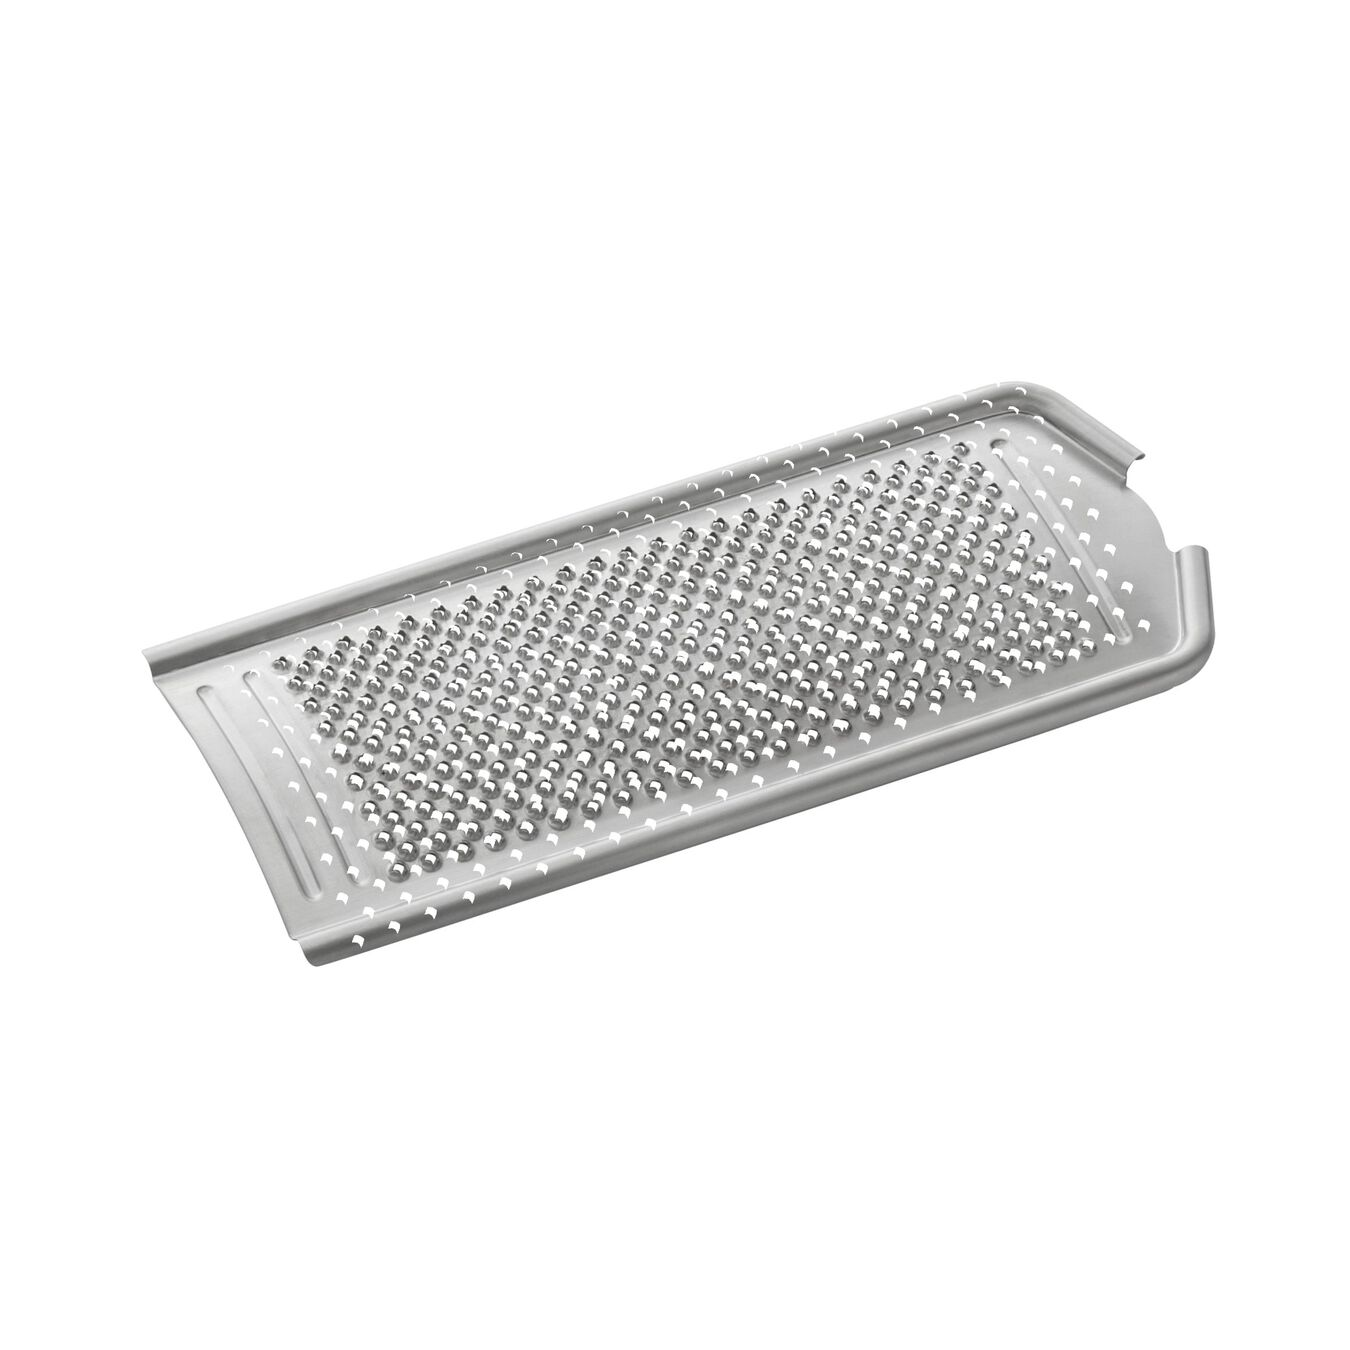 18/10 Stainless Steel, Grater,,large 4